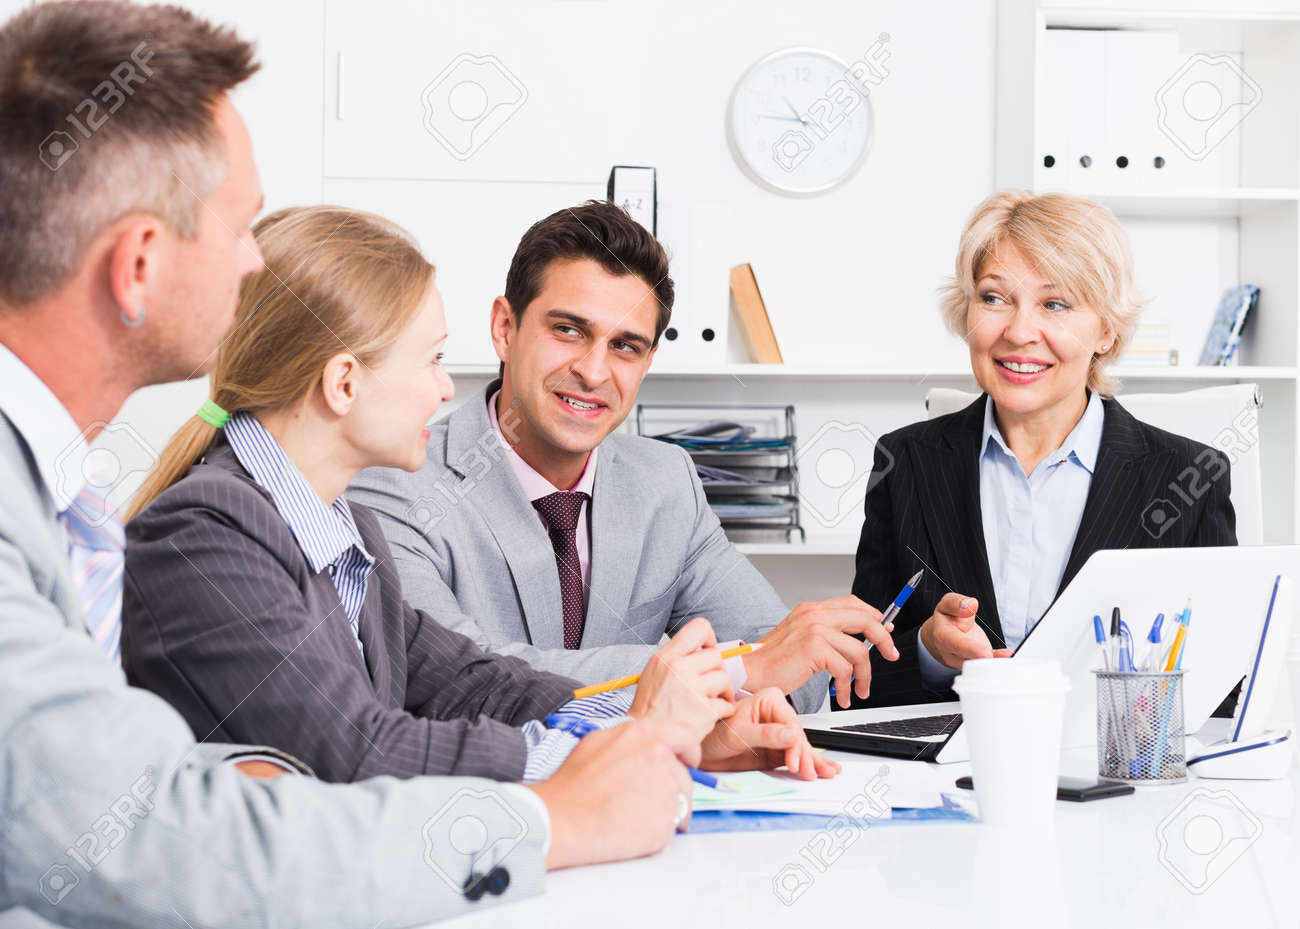 Business people developing strategy in office - 158469889